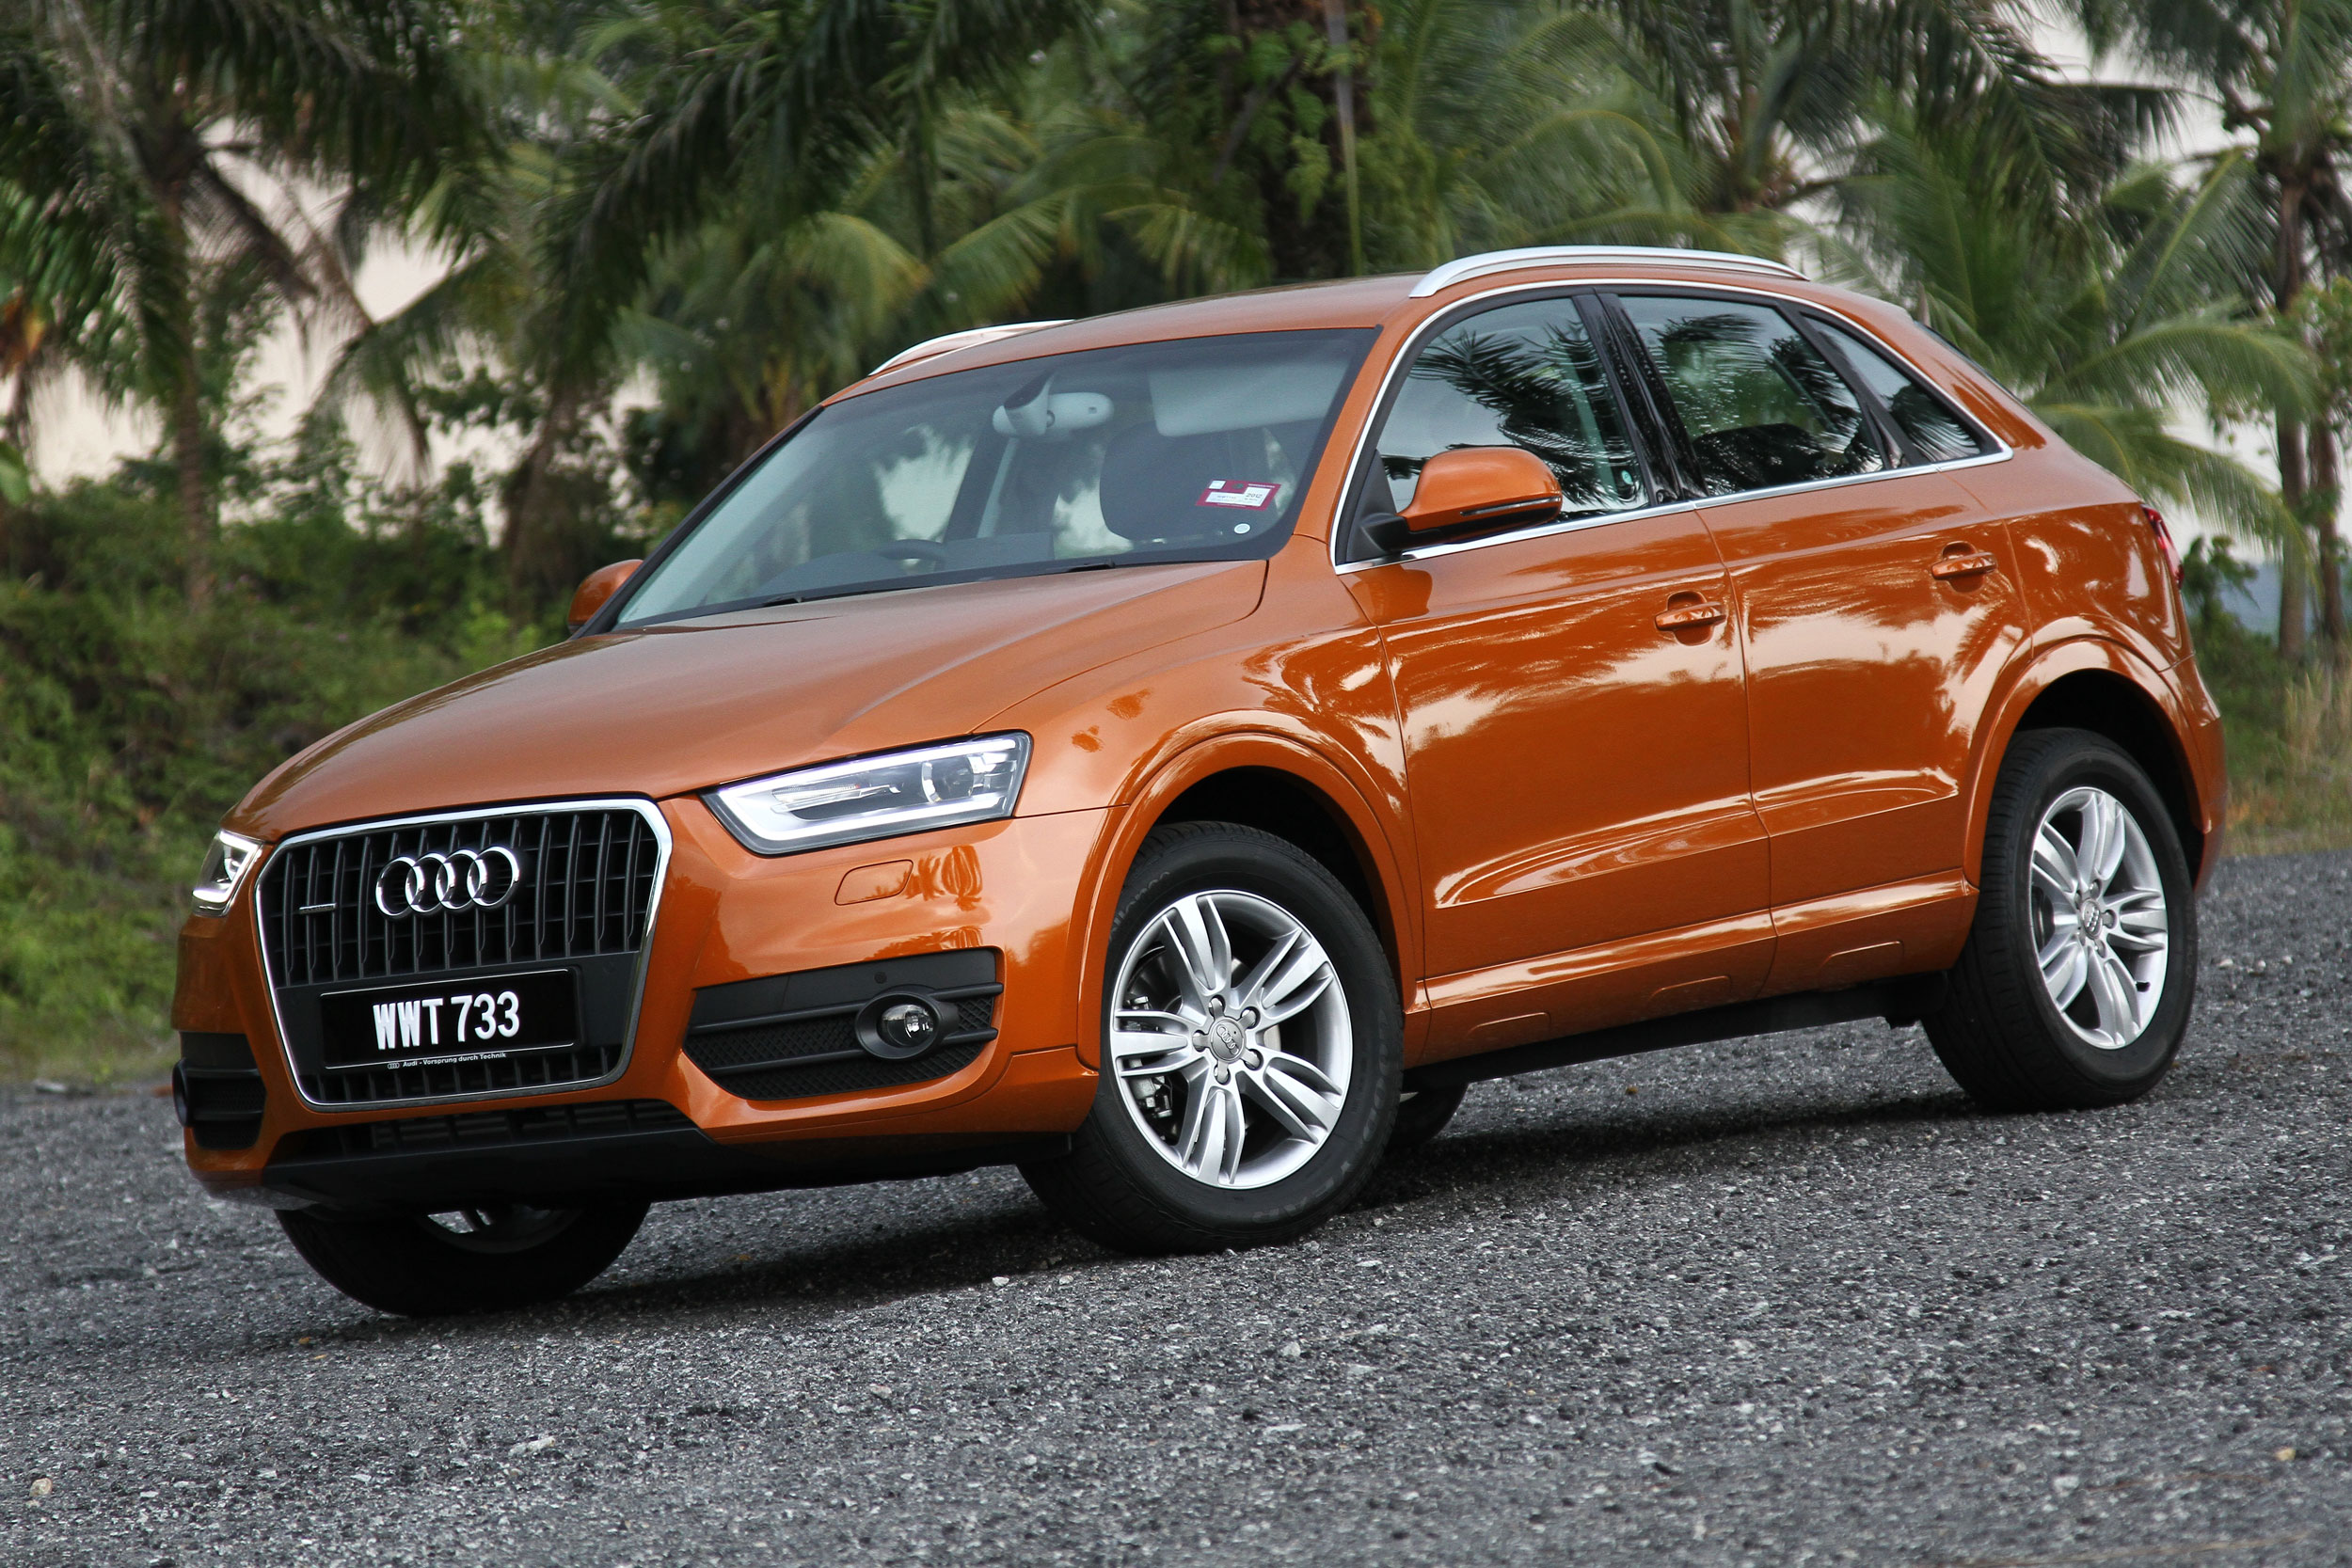 audi q3 2 0 tfsi 170hp test drive review image 115305. Black Bedroom Furniture Sets. Home Design Ideas